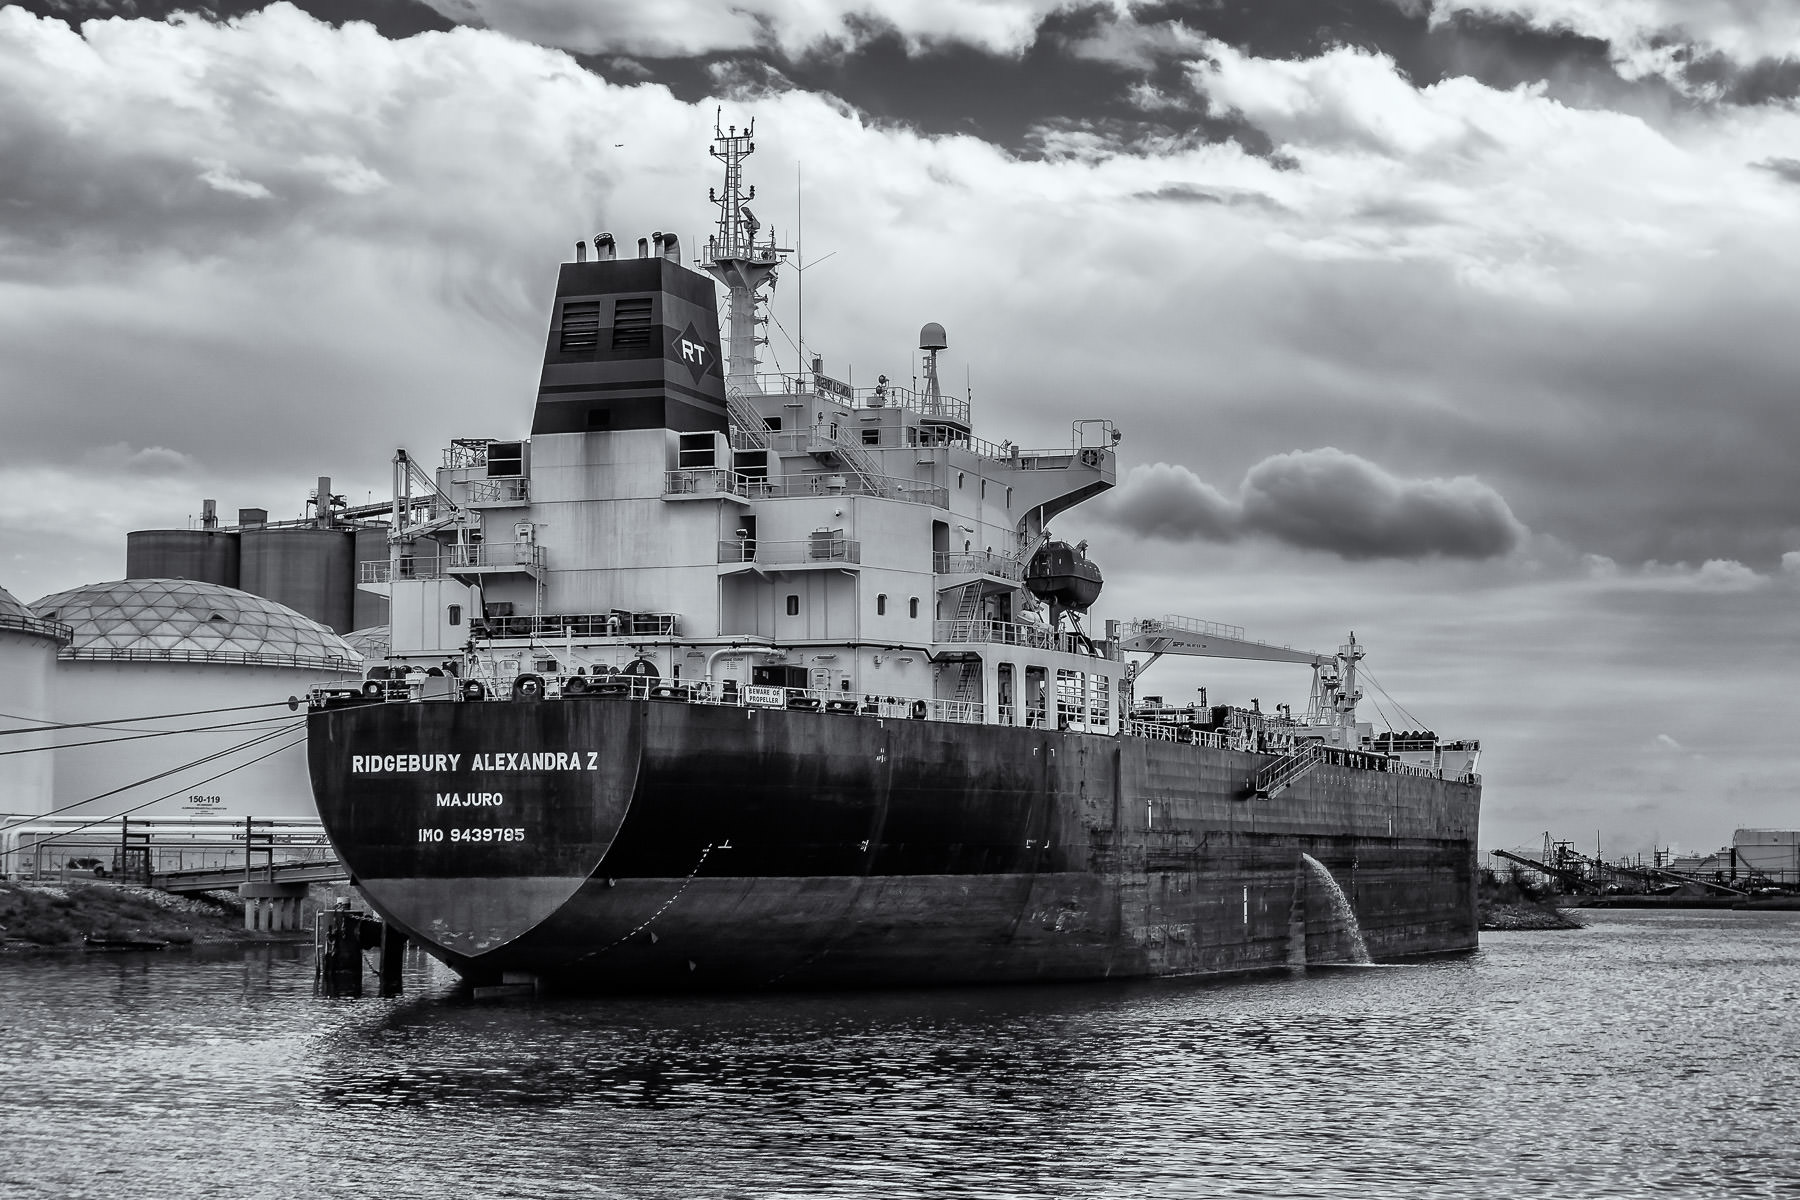 The chemical tankerRidgebury Alexandra Z sits docked in the Houston Ship Channel, Texas.